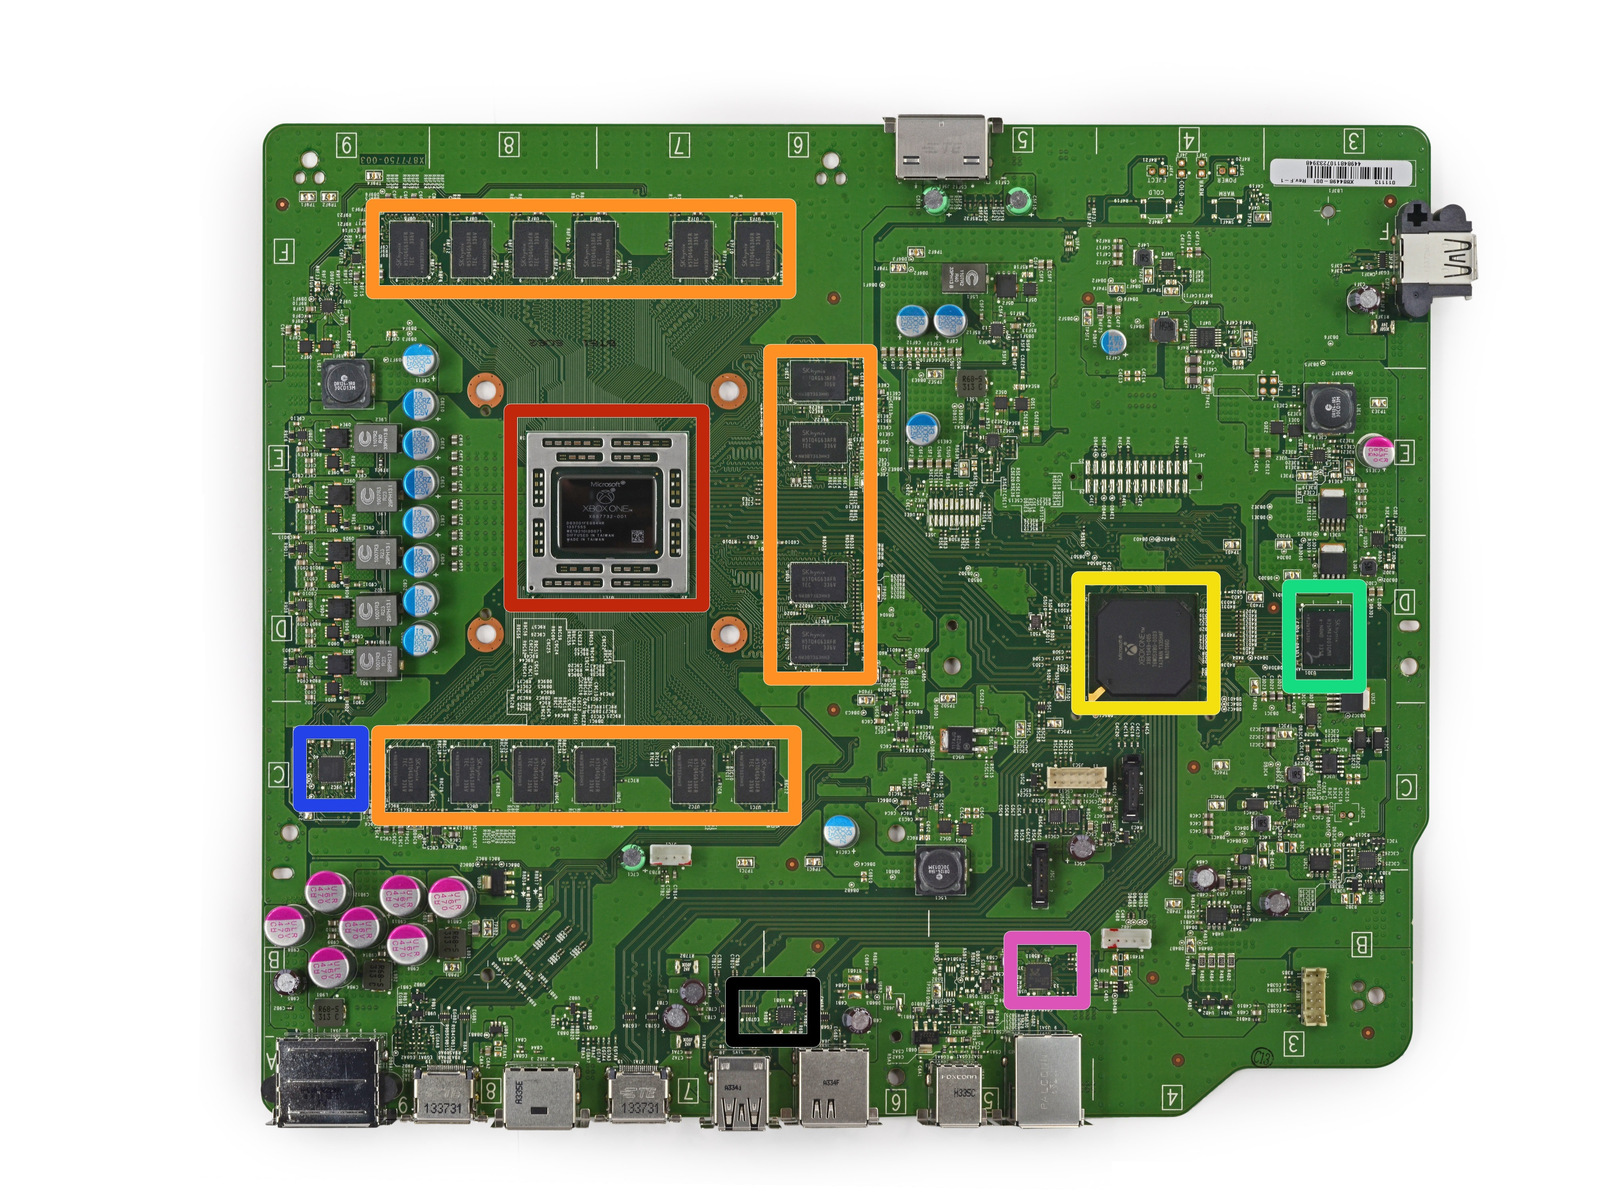 playstation 3 controller diagram with New Xbox One Makes Rattling Sound on Micro Usb Cable For Syncing And Charging Your Nokia Lumia 620 Smart Phone in addition Playstation retropie mod also Ifixit Ps3 Slim Teardown likewise 19718 moreover 156467 Xbox One Hardware And Software Specs Detailed And Analyzed.